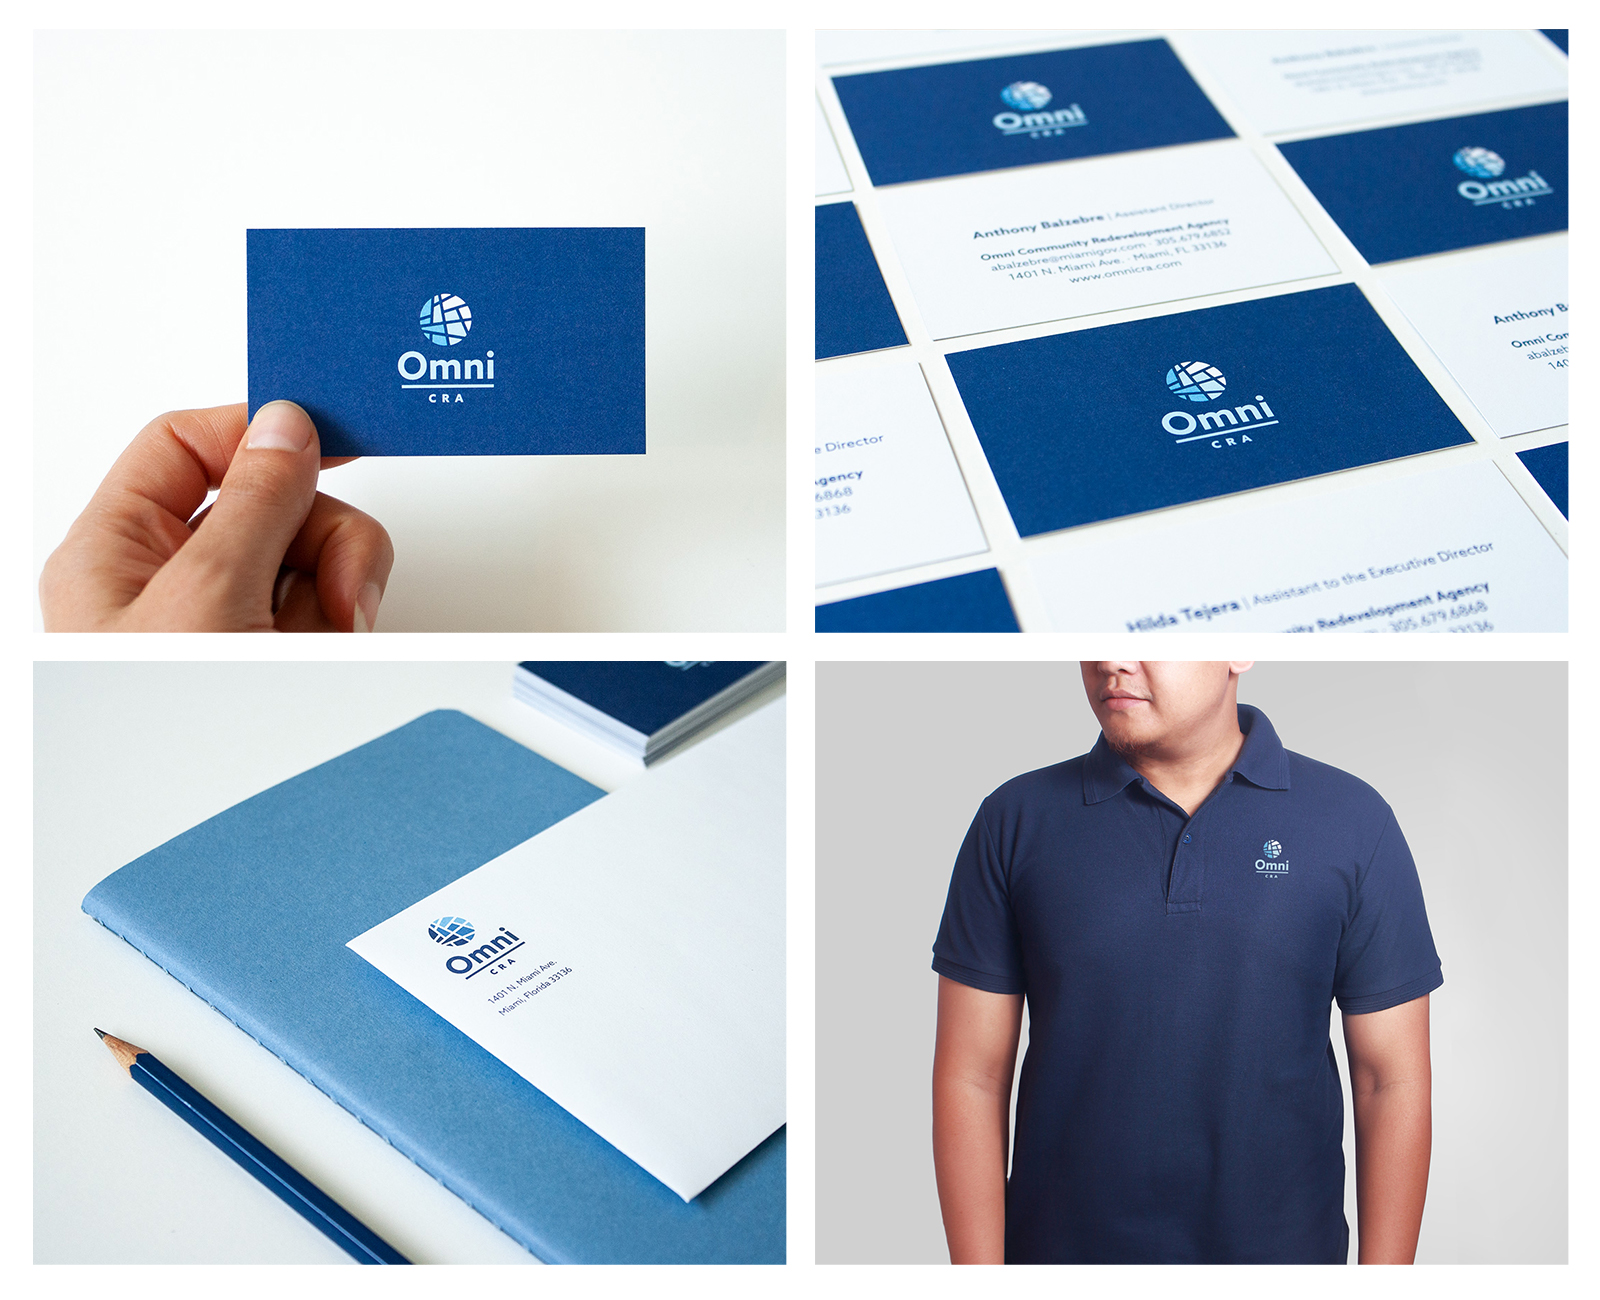 Omni CRA envelope and business card with stationery items, and polo shirt design